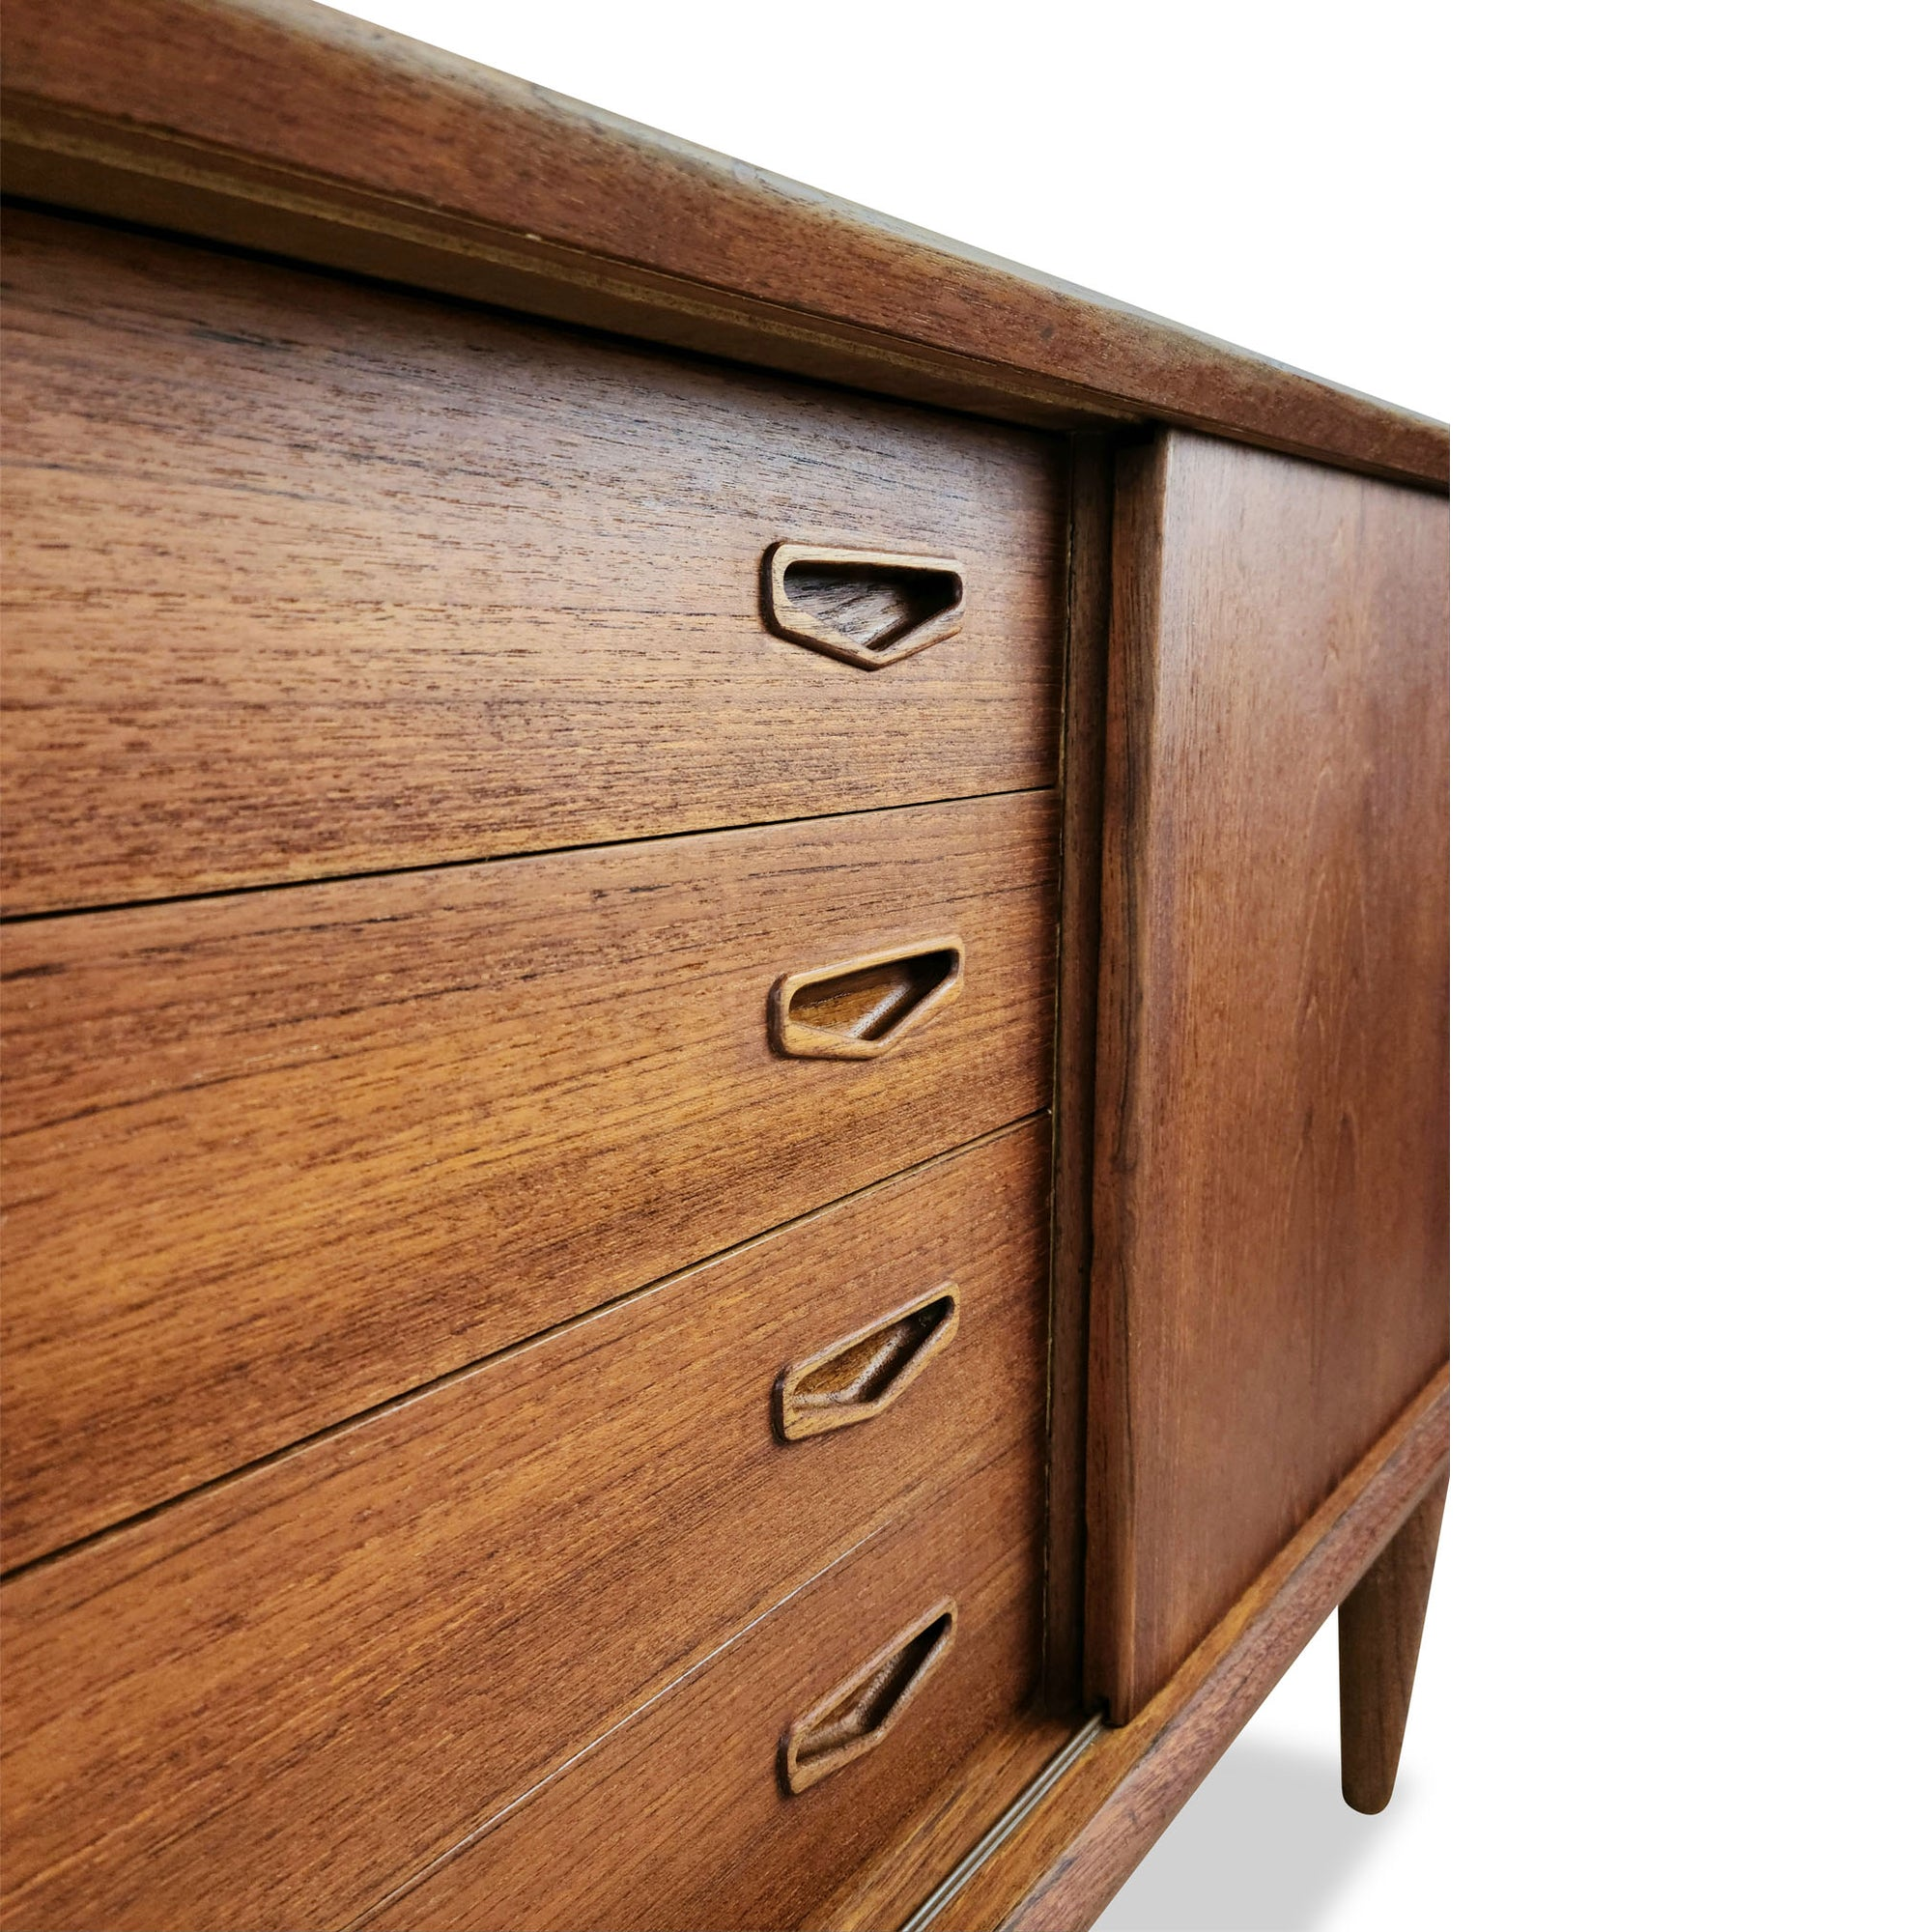 Teak Sideboard By Clausen And Son Decade Five Furniture Co